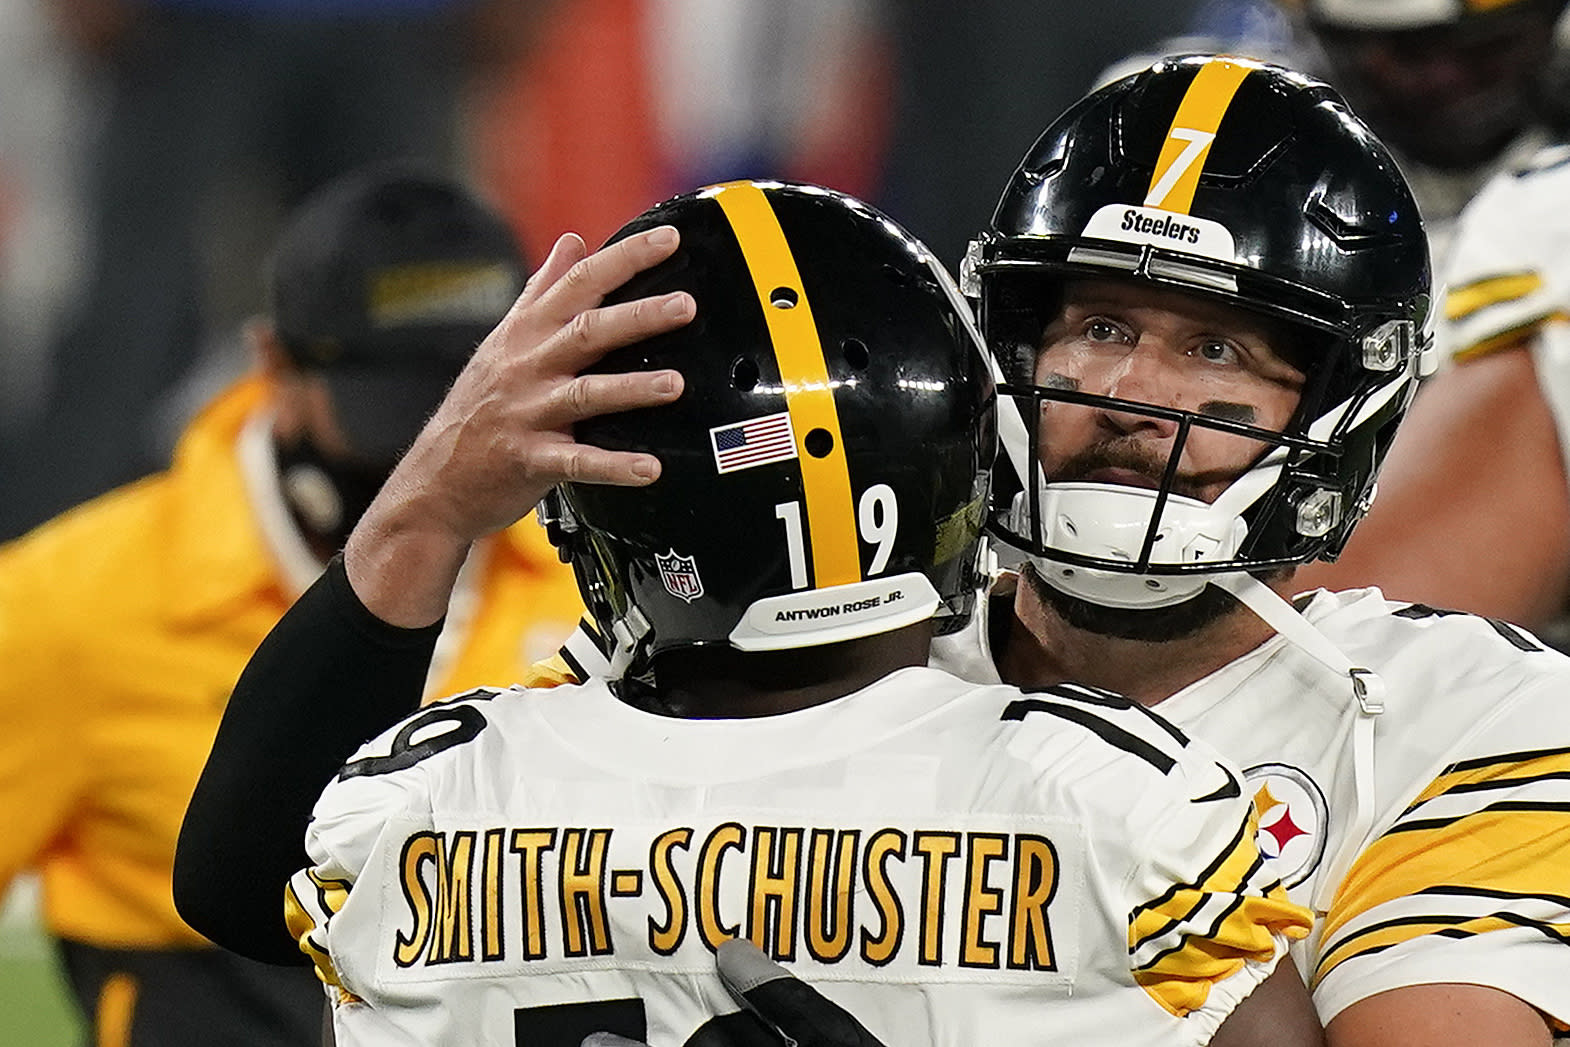 FILE - Pittsburgh Steelers wide receiver JuJu Smith-Schuster (19) celebrates with Pittsburgh Steelers quarterback Ben Roethlisberger (7) after scoring a touchdown against the New York Giants during the fourth quarter of an NFL football game Monday, Sept. 14, 2020, in East Rutherford, N.J. The name Antwon Rose Jr., a Black Pittsburgh teenager shot in the back and killed by a white police officer in 2018, has his name on a white strip on the back of most Steelers helmets, (AP Photo/Seth Wenig, File)